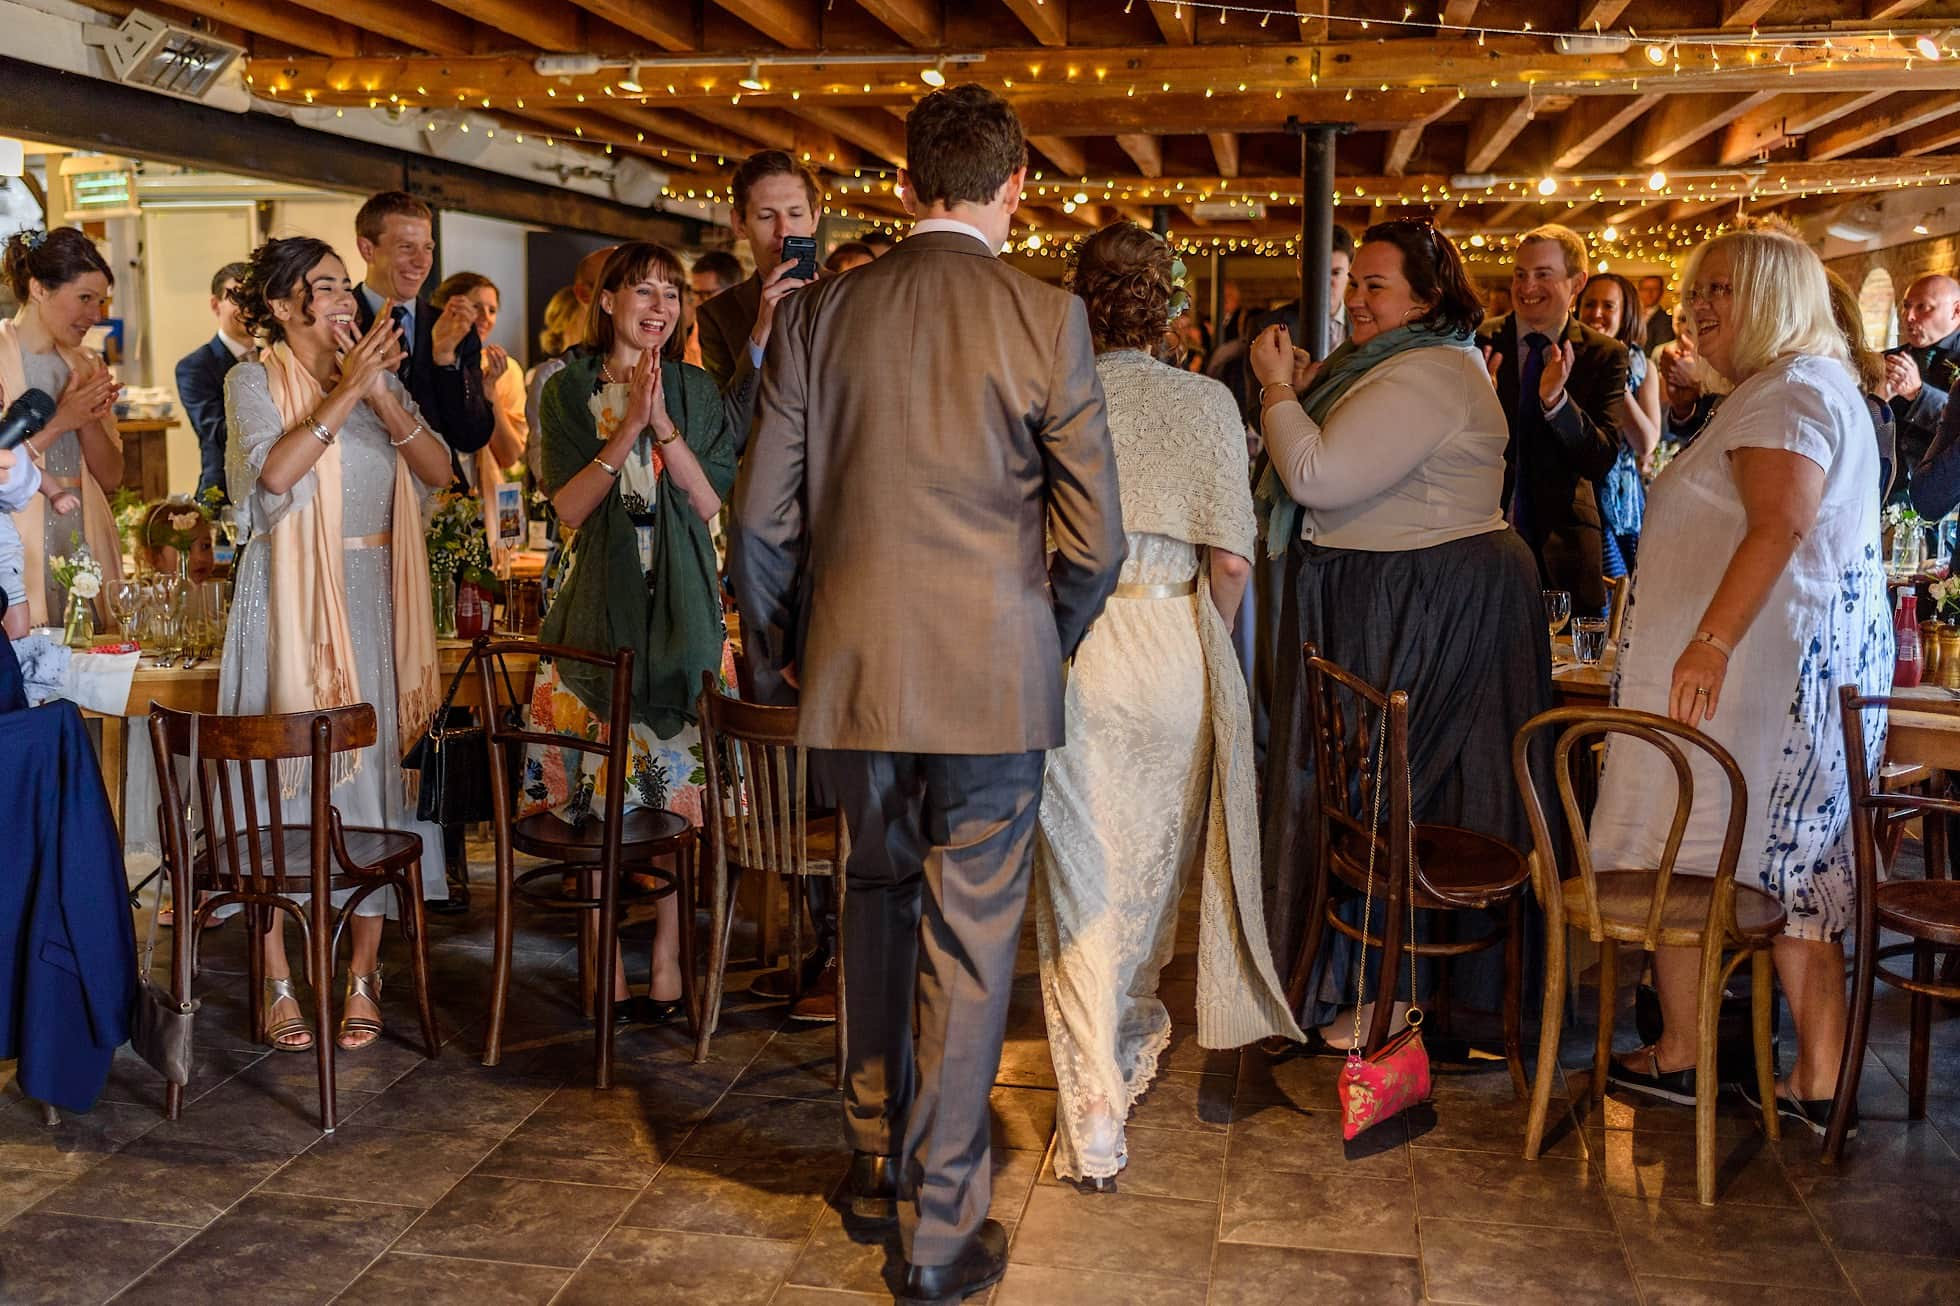 Standing ovation for the bride and groom